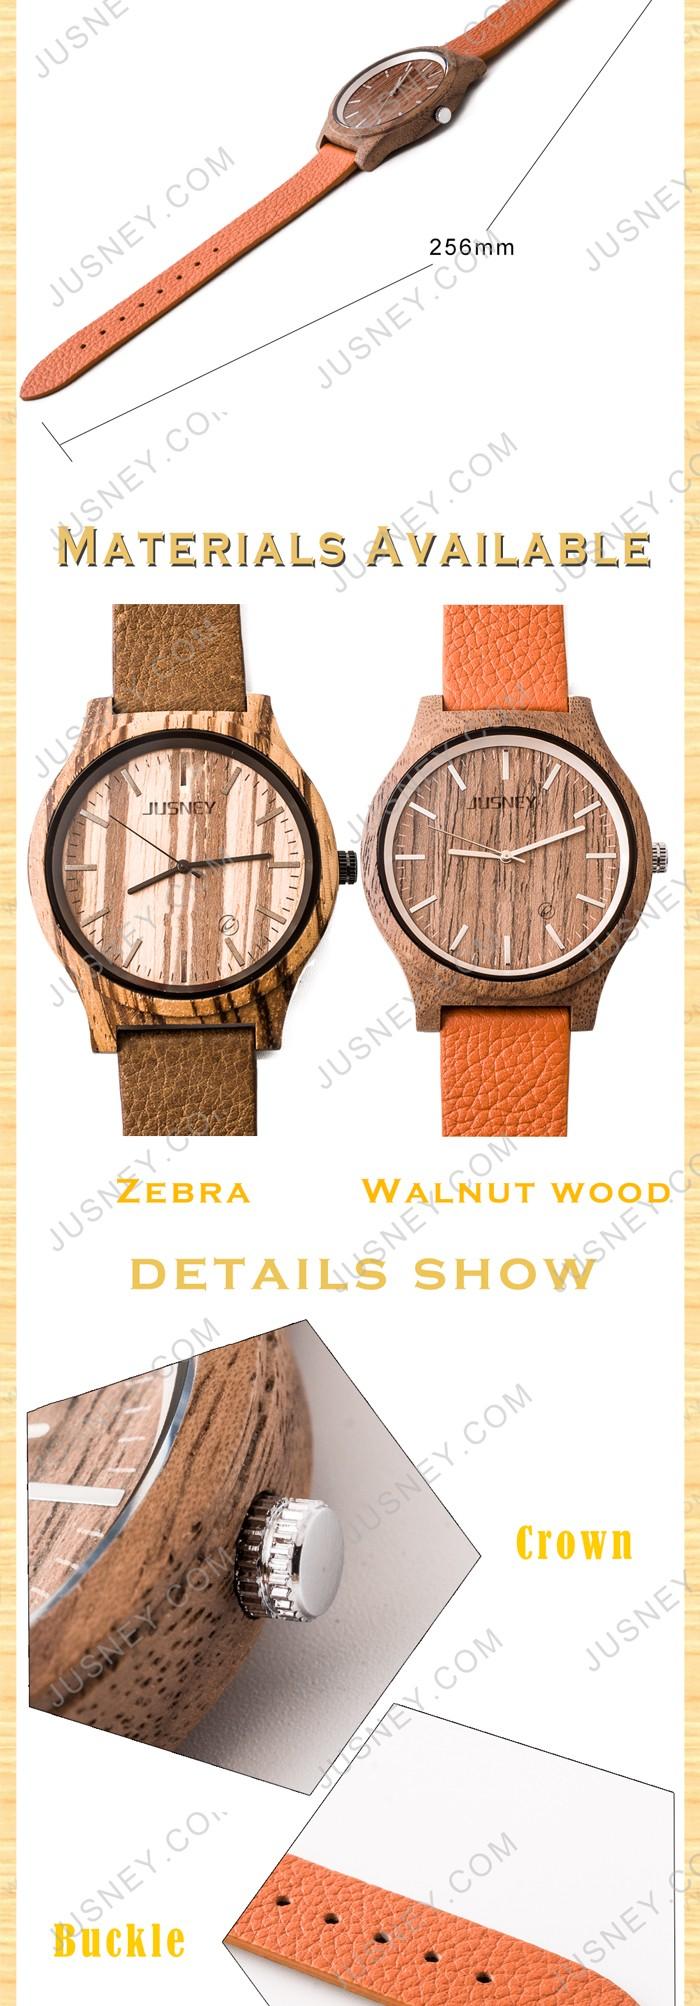 100% Healthy Hot Sale Handcrafted We Wood Original Grain Watches With Band Custom Logo Digital Design Your Own Wewood Watch